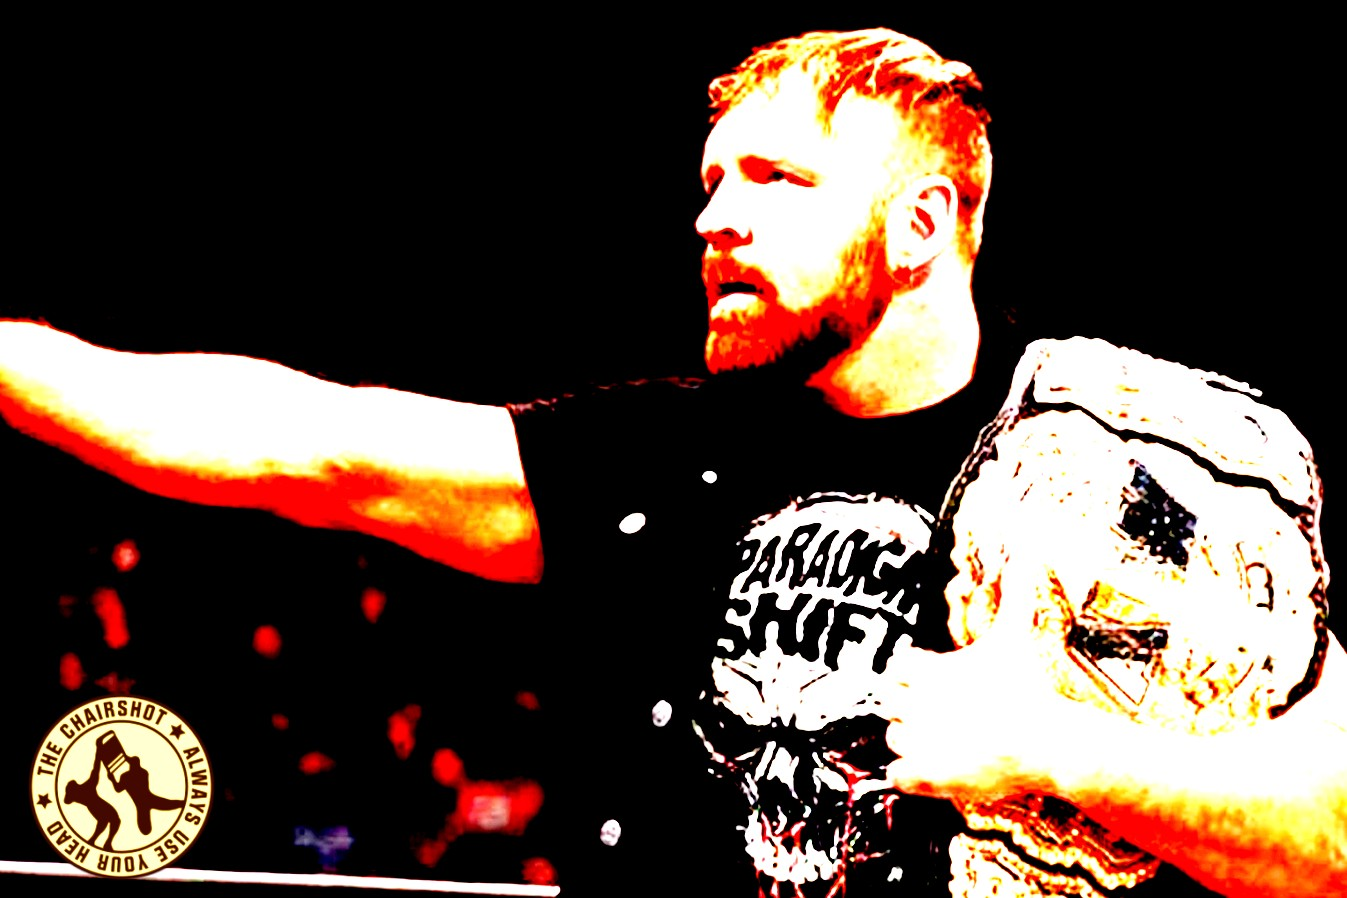 Jon Moxley AEW Champion Chairshot Edit